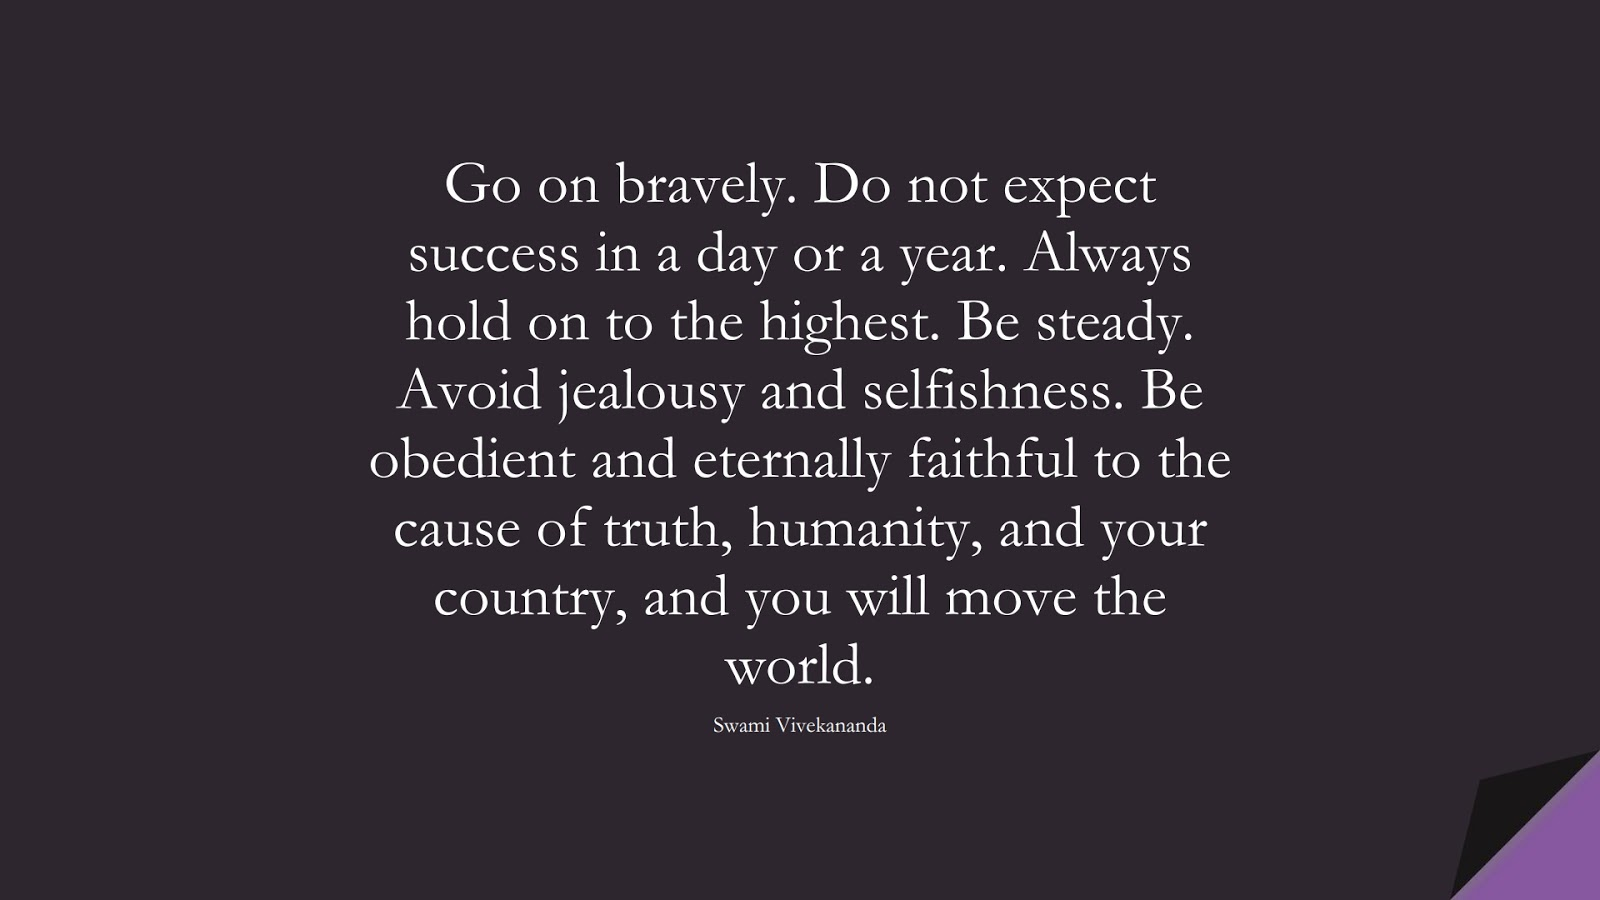 Go on bravely. Do not expect success in a day or a year. Always hold on to the highest. Be steady. Avoid jealousy and selfishness. Be obedient and eternally faithful to the cause of truth, humanity, and your country, and you will move the world. (Swami Vivekananda);  #HumanityQuotes